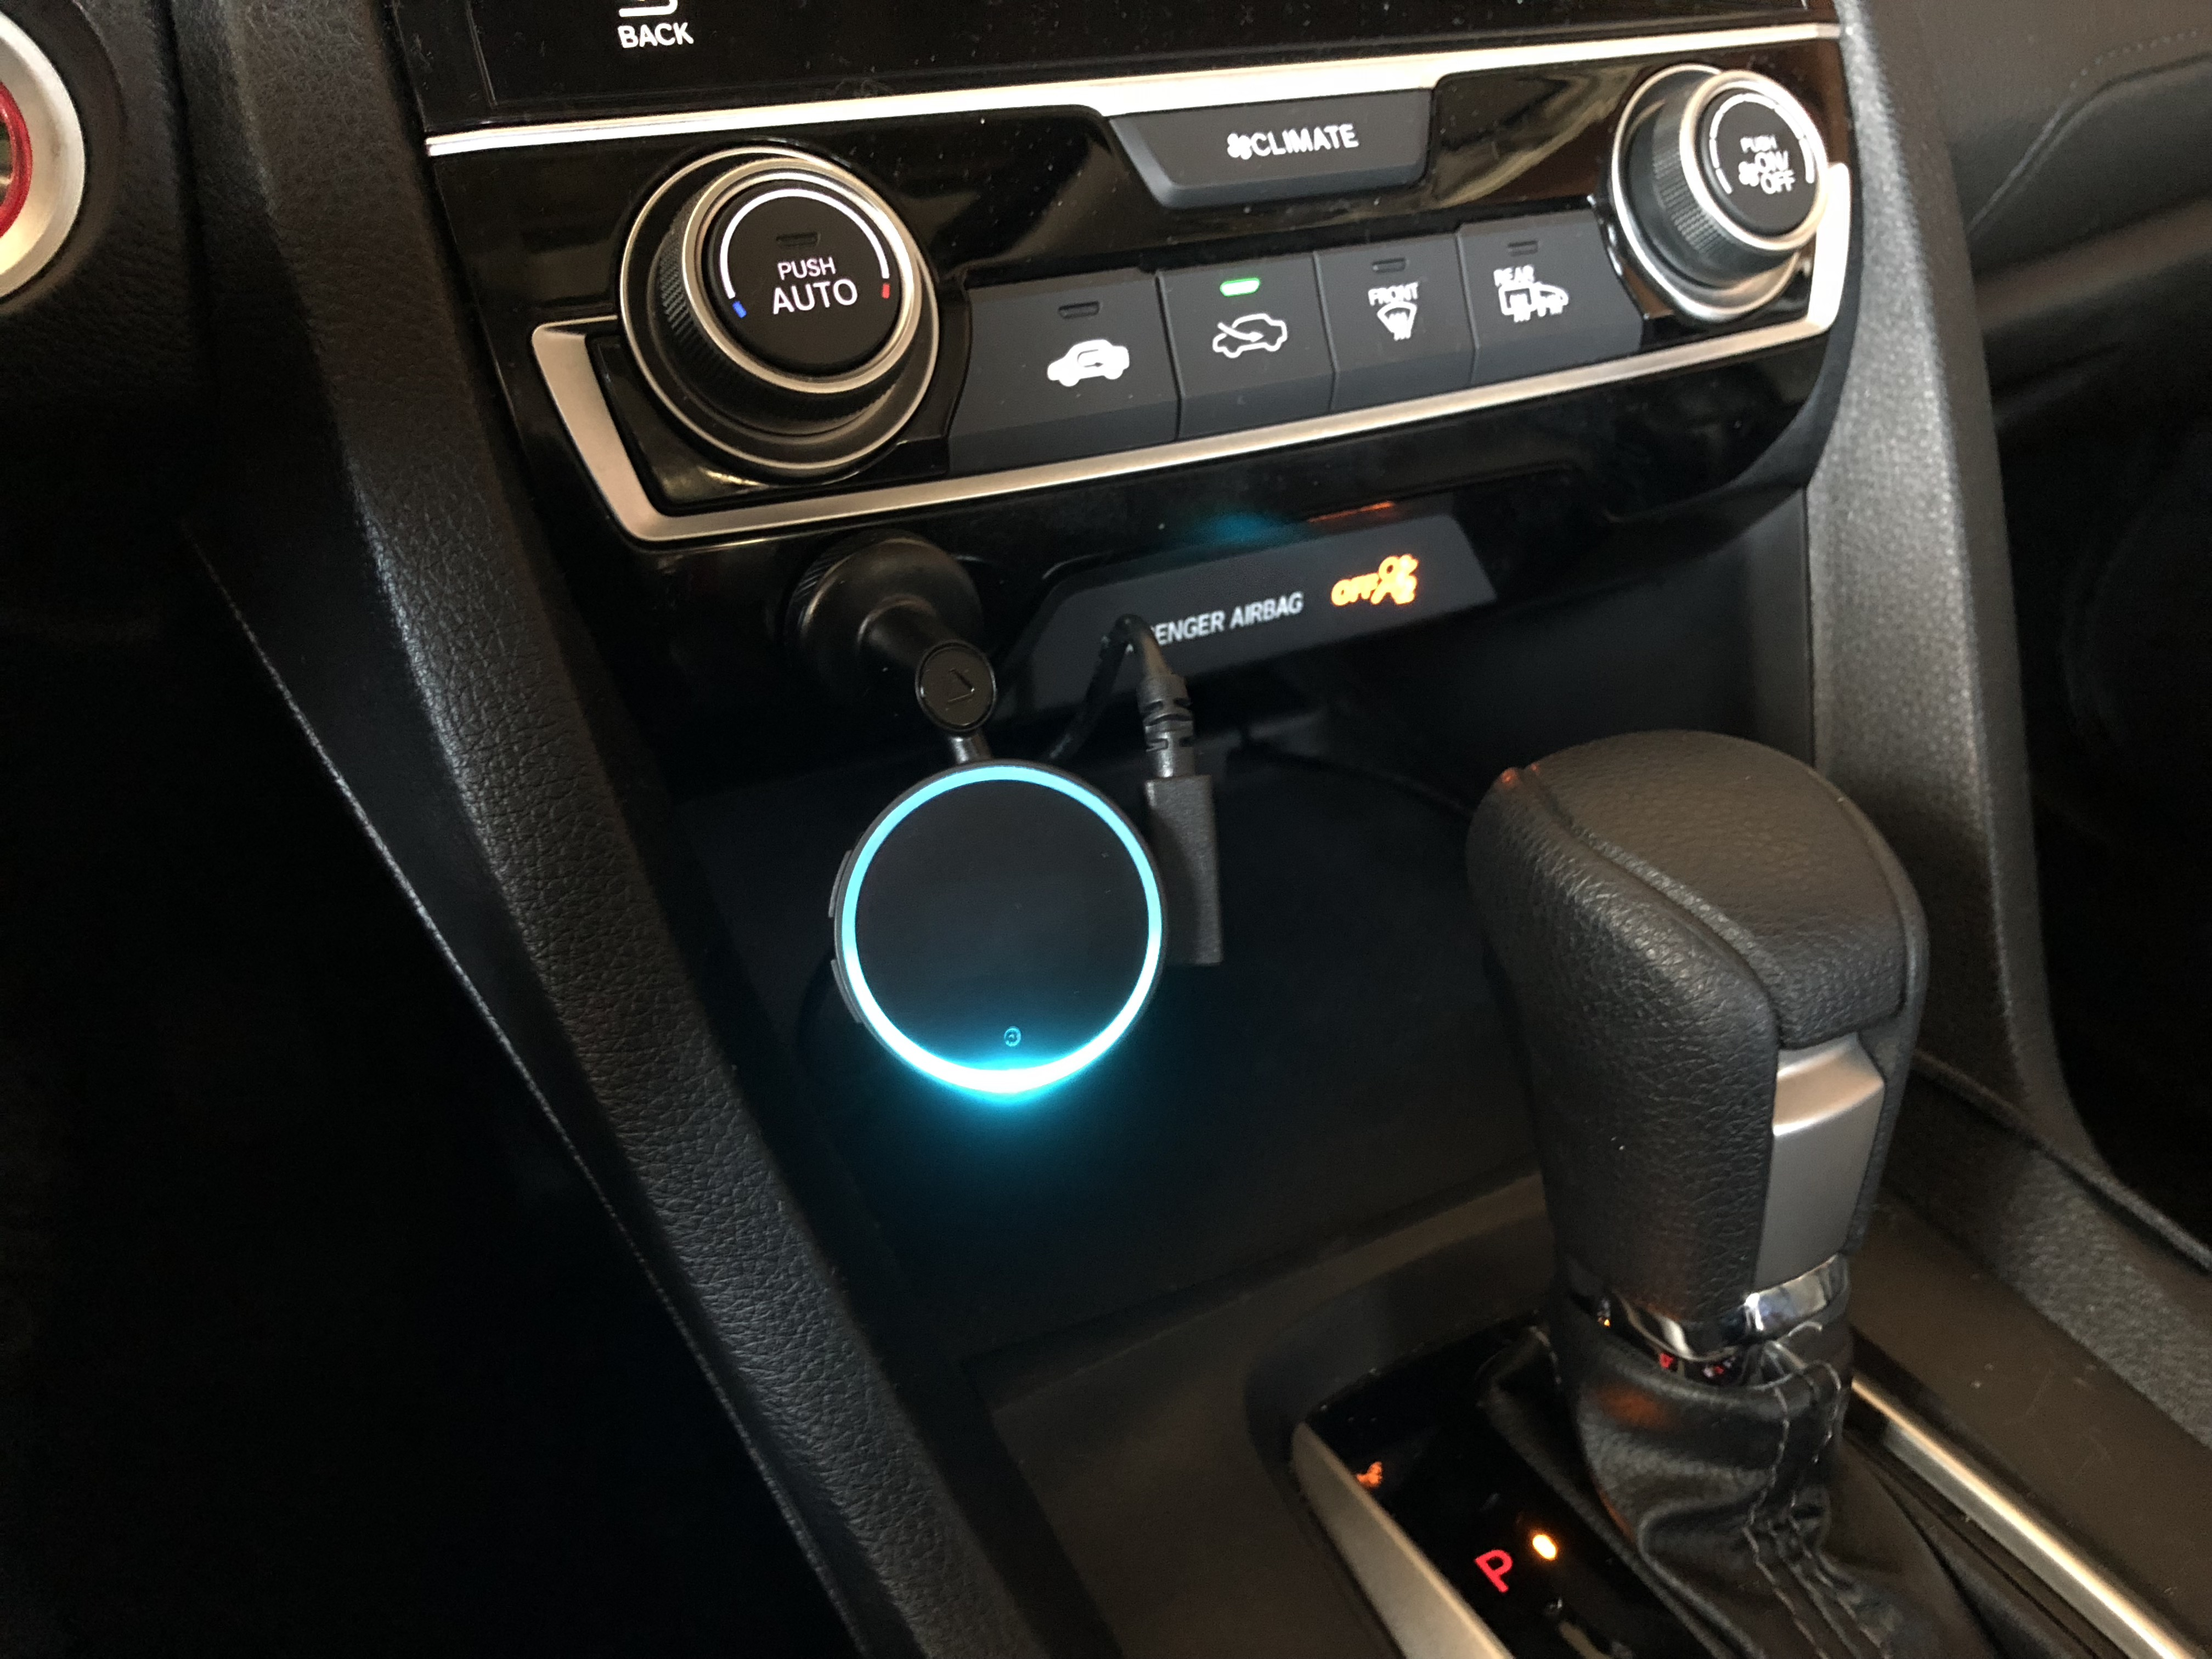 Review: Garmin Speak adds Alexa to the car with navigation cues, but